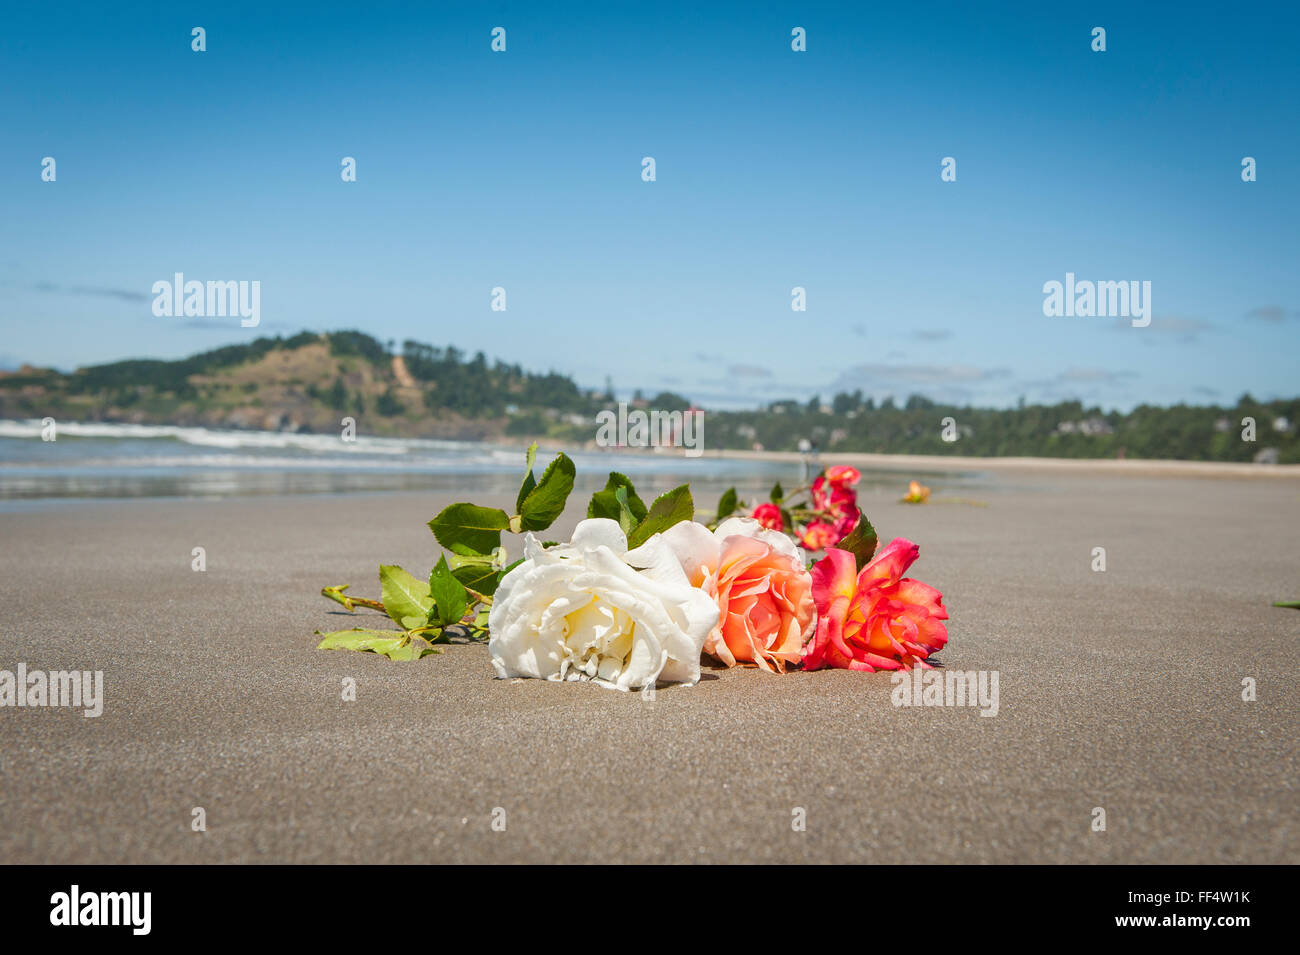 Oregonians place boquets of roses on the Pacific beach memorializing the lives of the victims of the 2011 Japanese - Stock Image